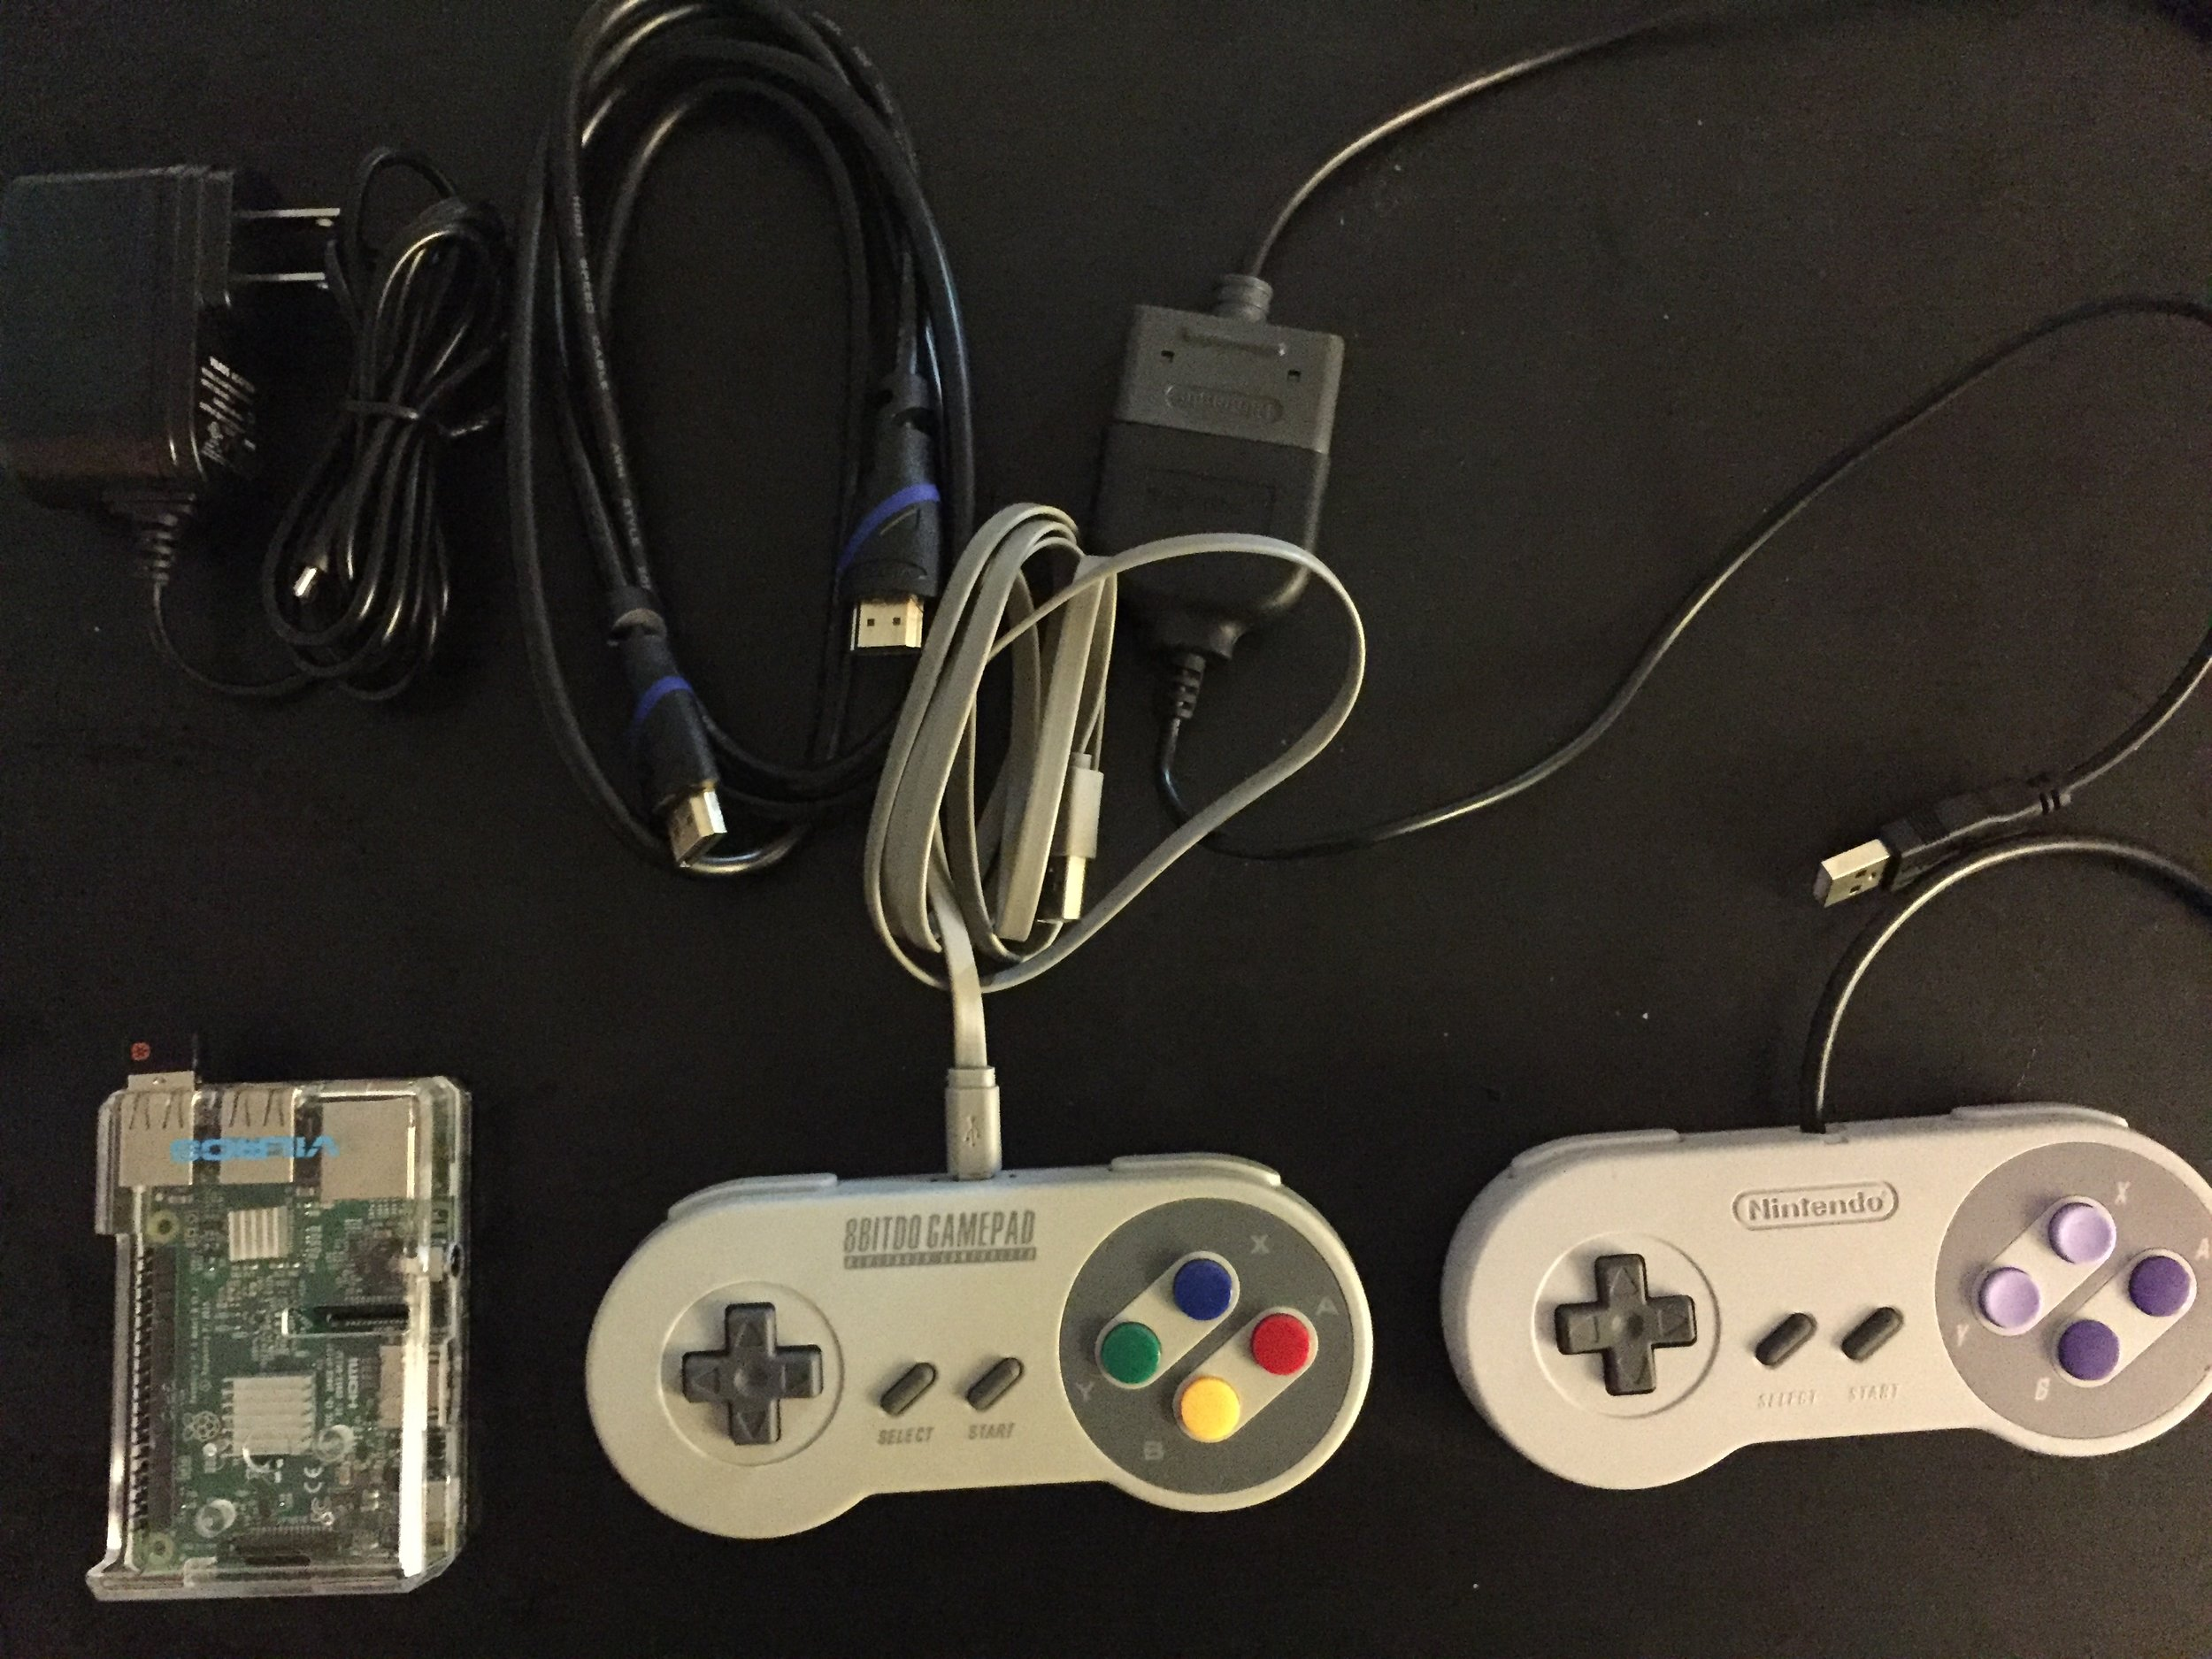 Pretty amazing that the Pi is almost as big/small as the SNES controller.